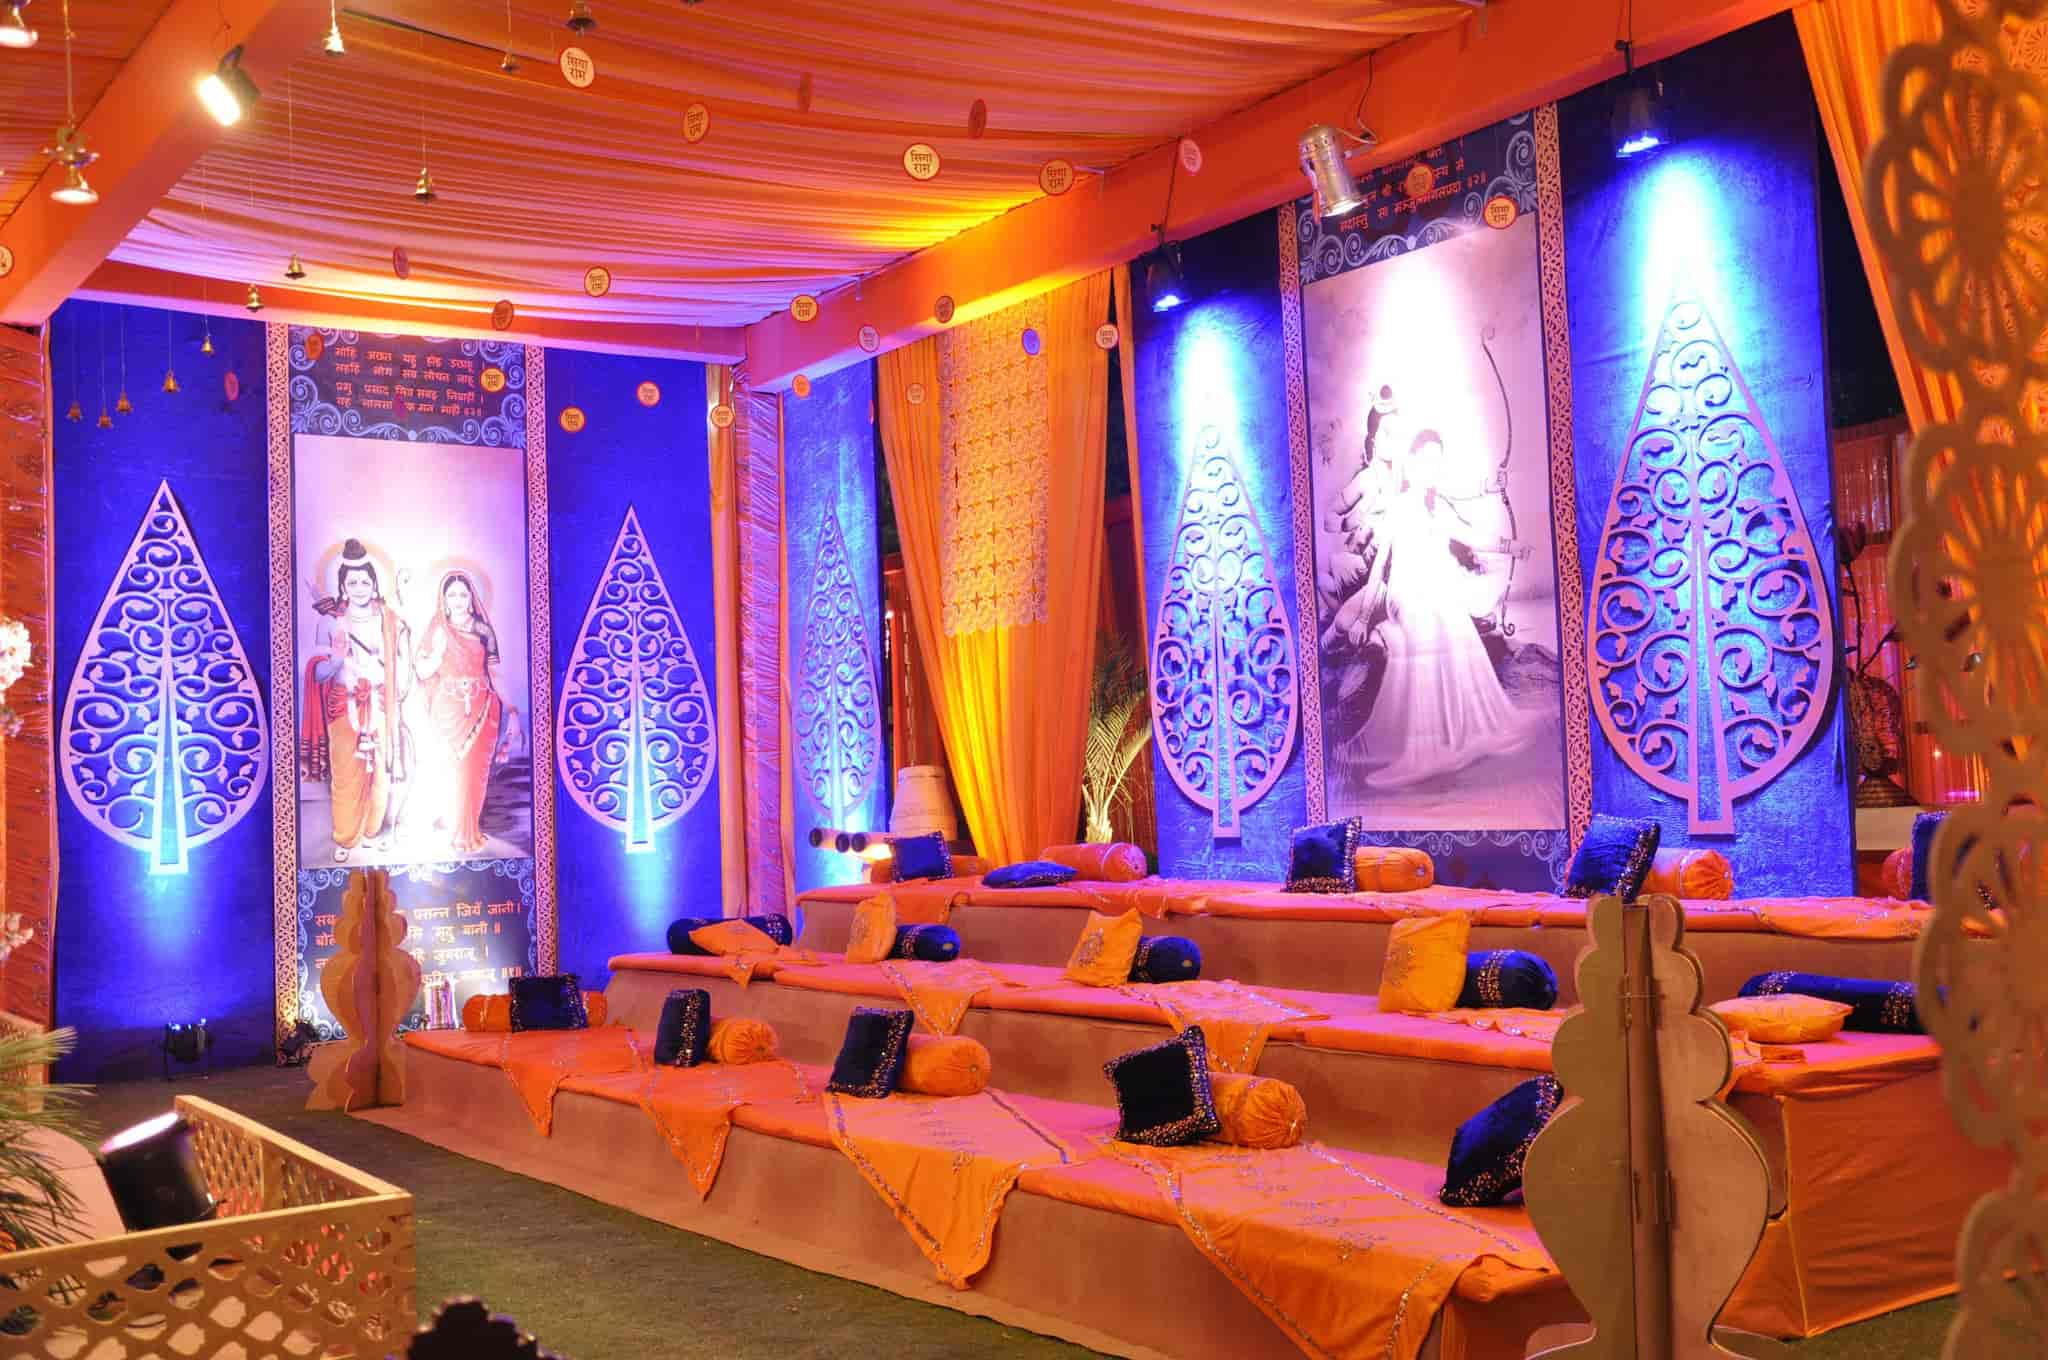 Wedding decoration ludhiana image collections wedding dress wedding decoration ludhiana images wedding dress decoration and wedding decoration ludhiana images wedding dress decoration and junglespirit Gallery